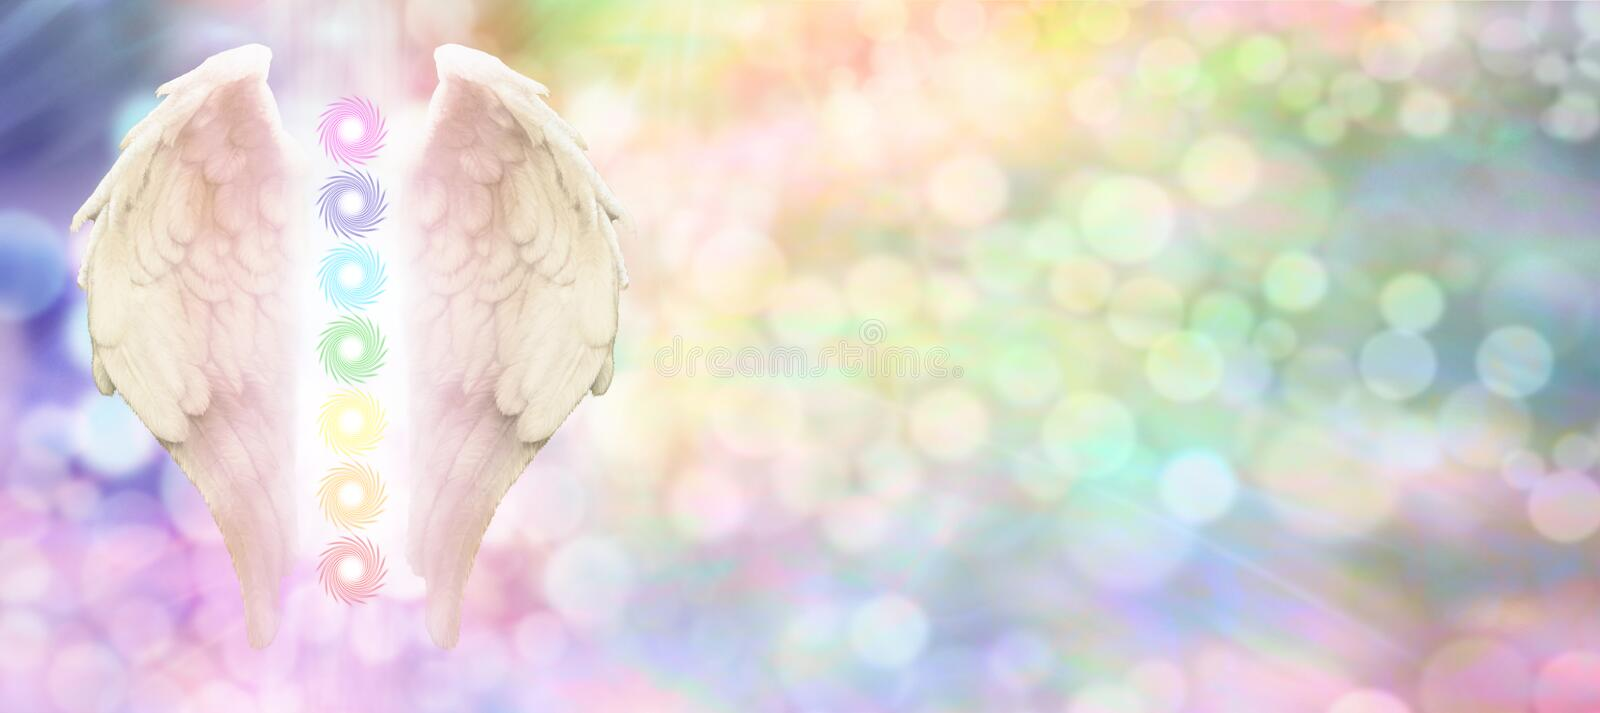 Websitetitel Reiki Angel Wings und sieben Chakras stockfotografie